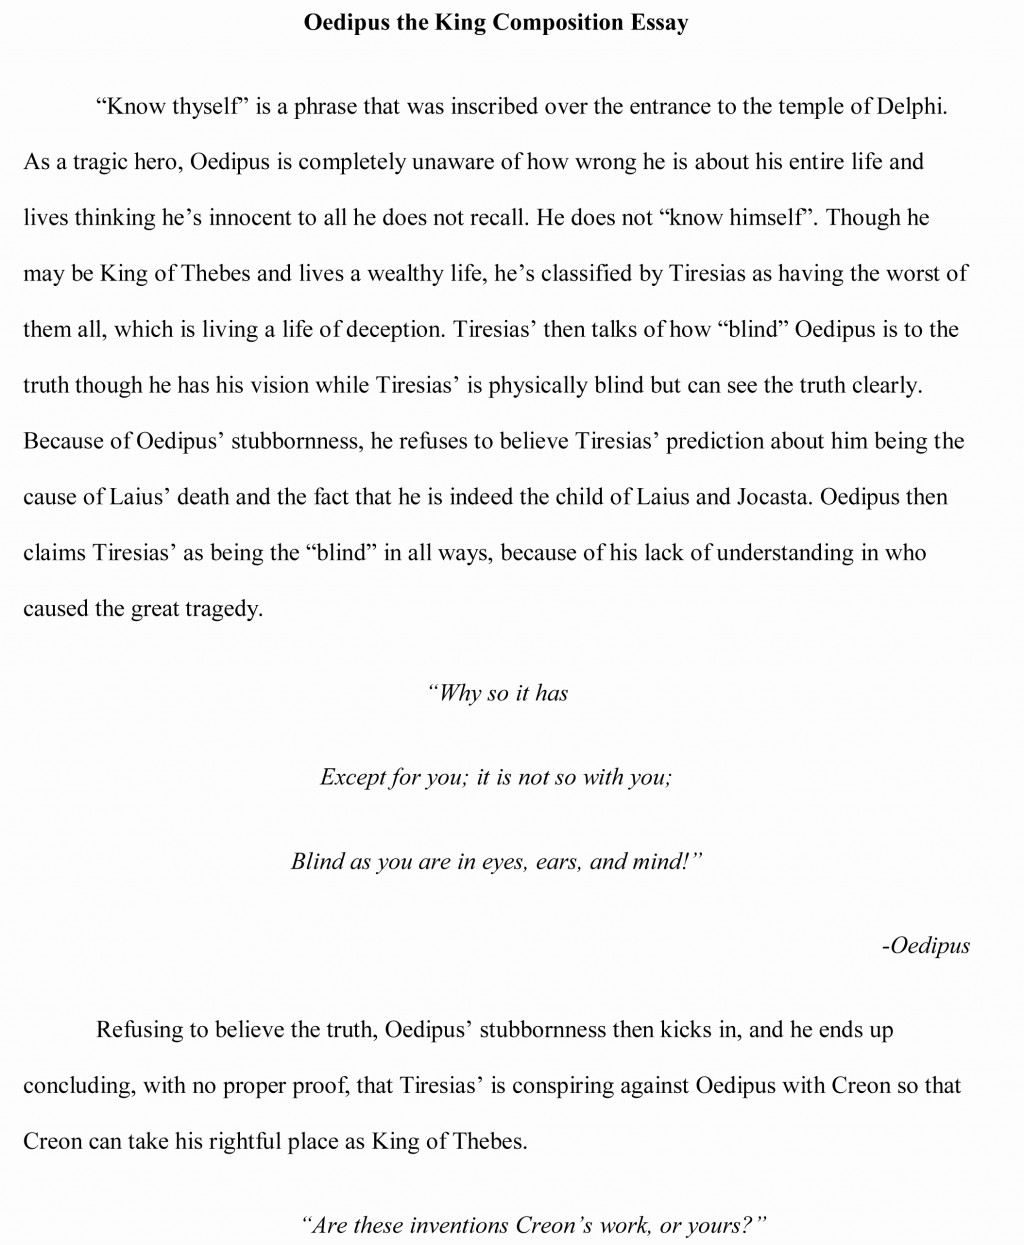 009 Romeo And Juliet Essay Prompts Example Topics For Ms Argumentatives High S Fantastic Prompt Who Is To Blame Questions Writing Large